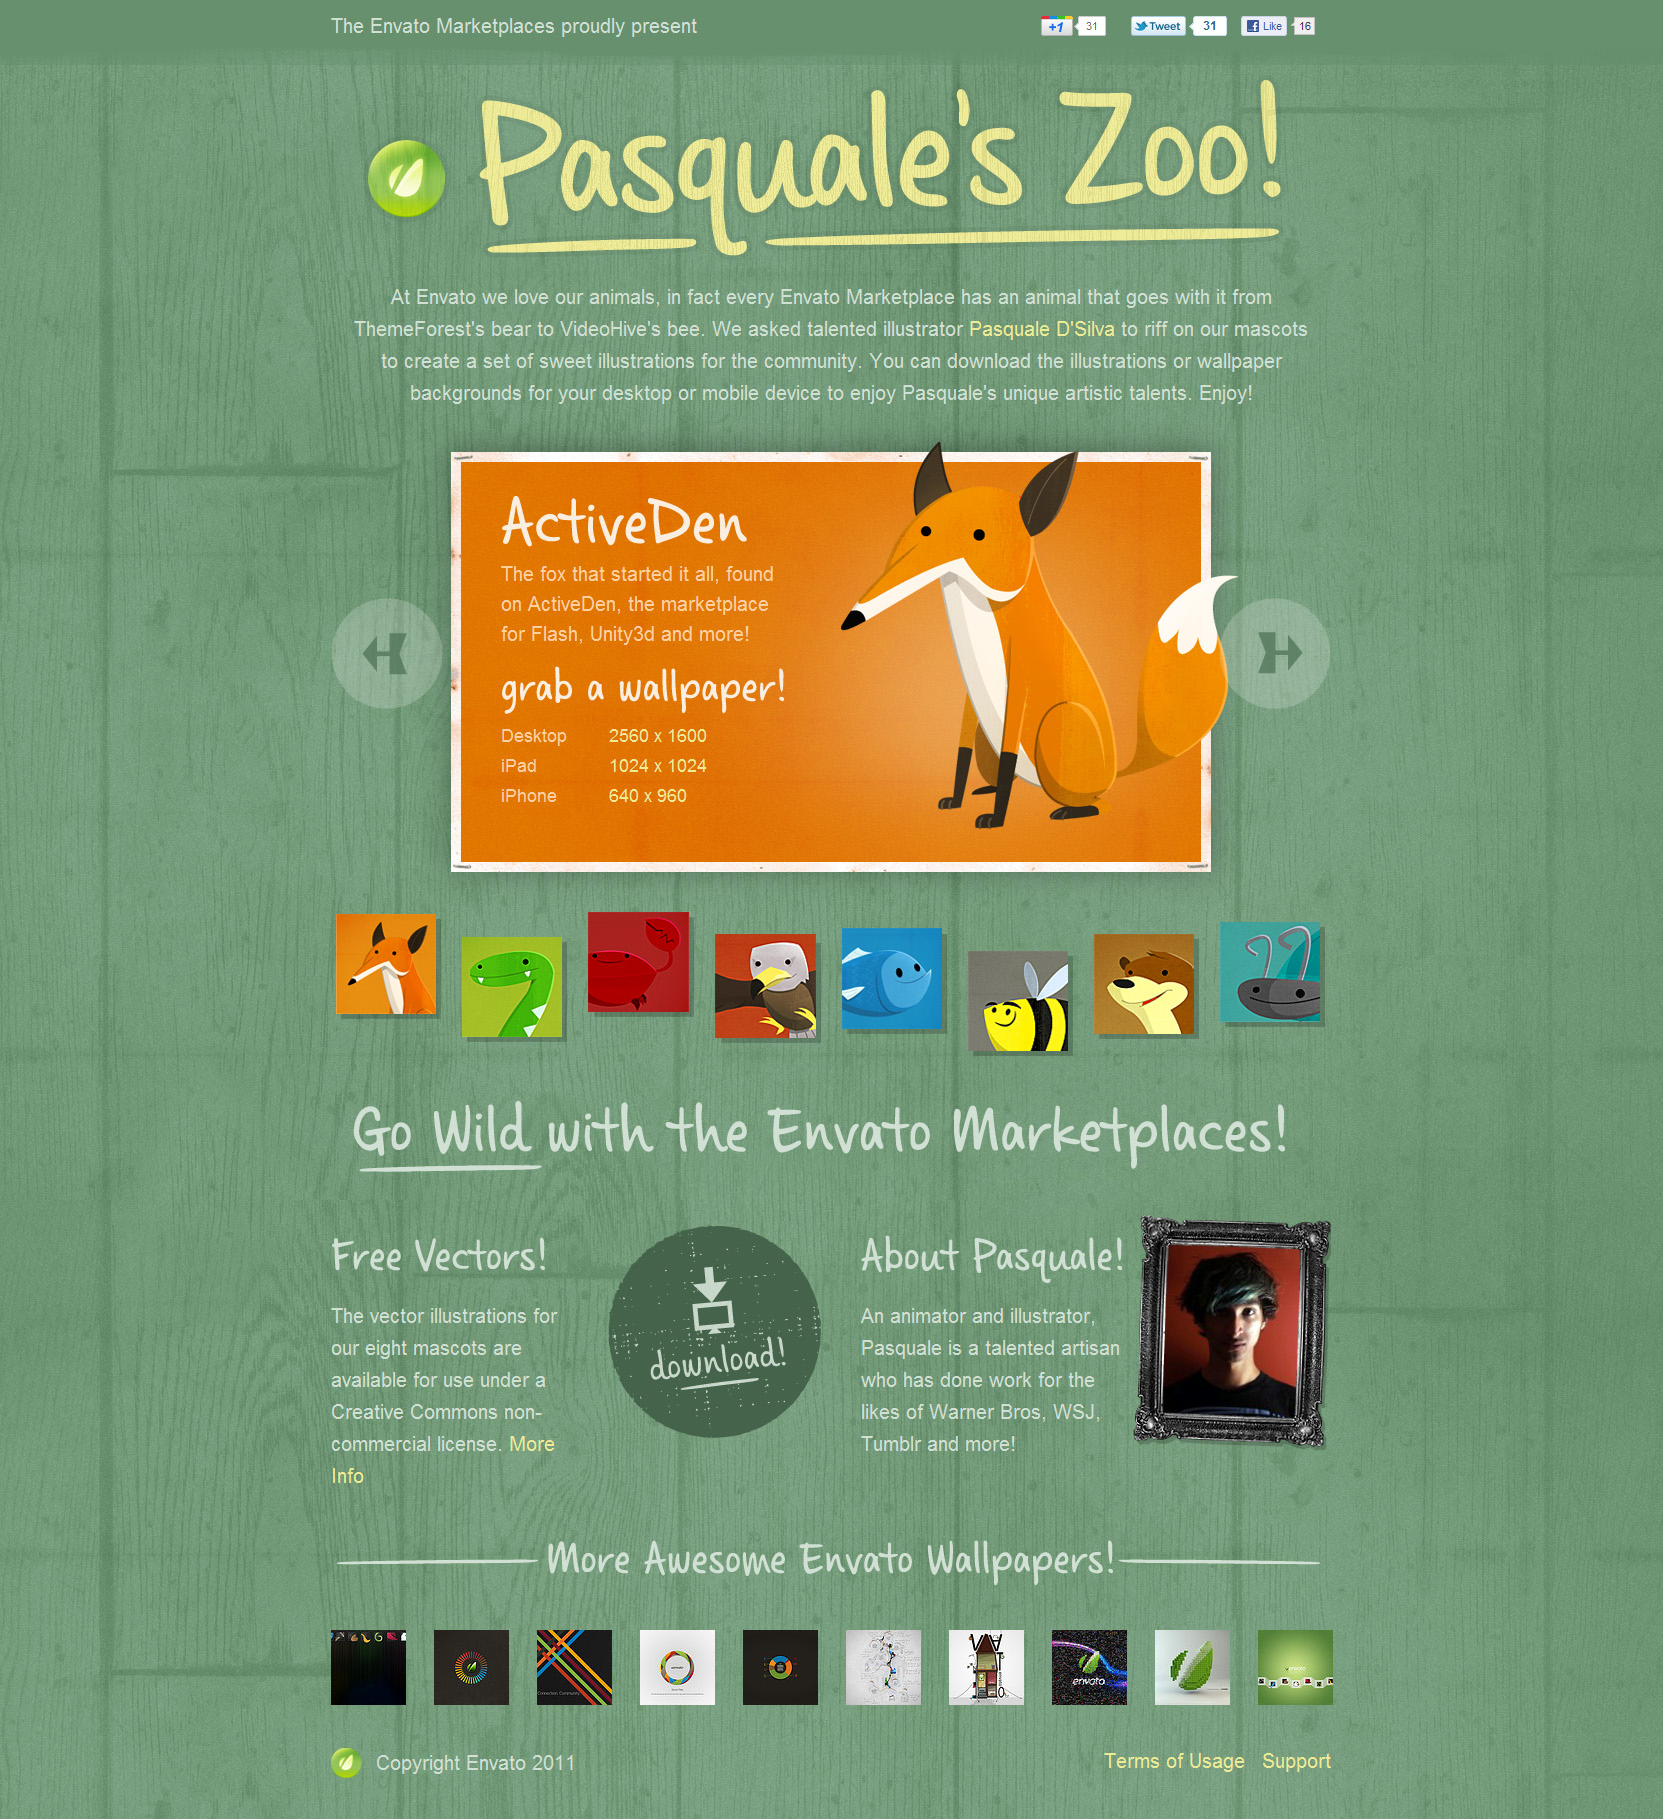 Pasquale's Zoo Website Screenshot